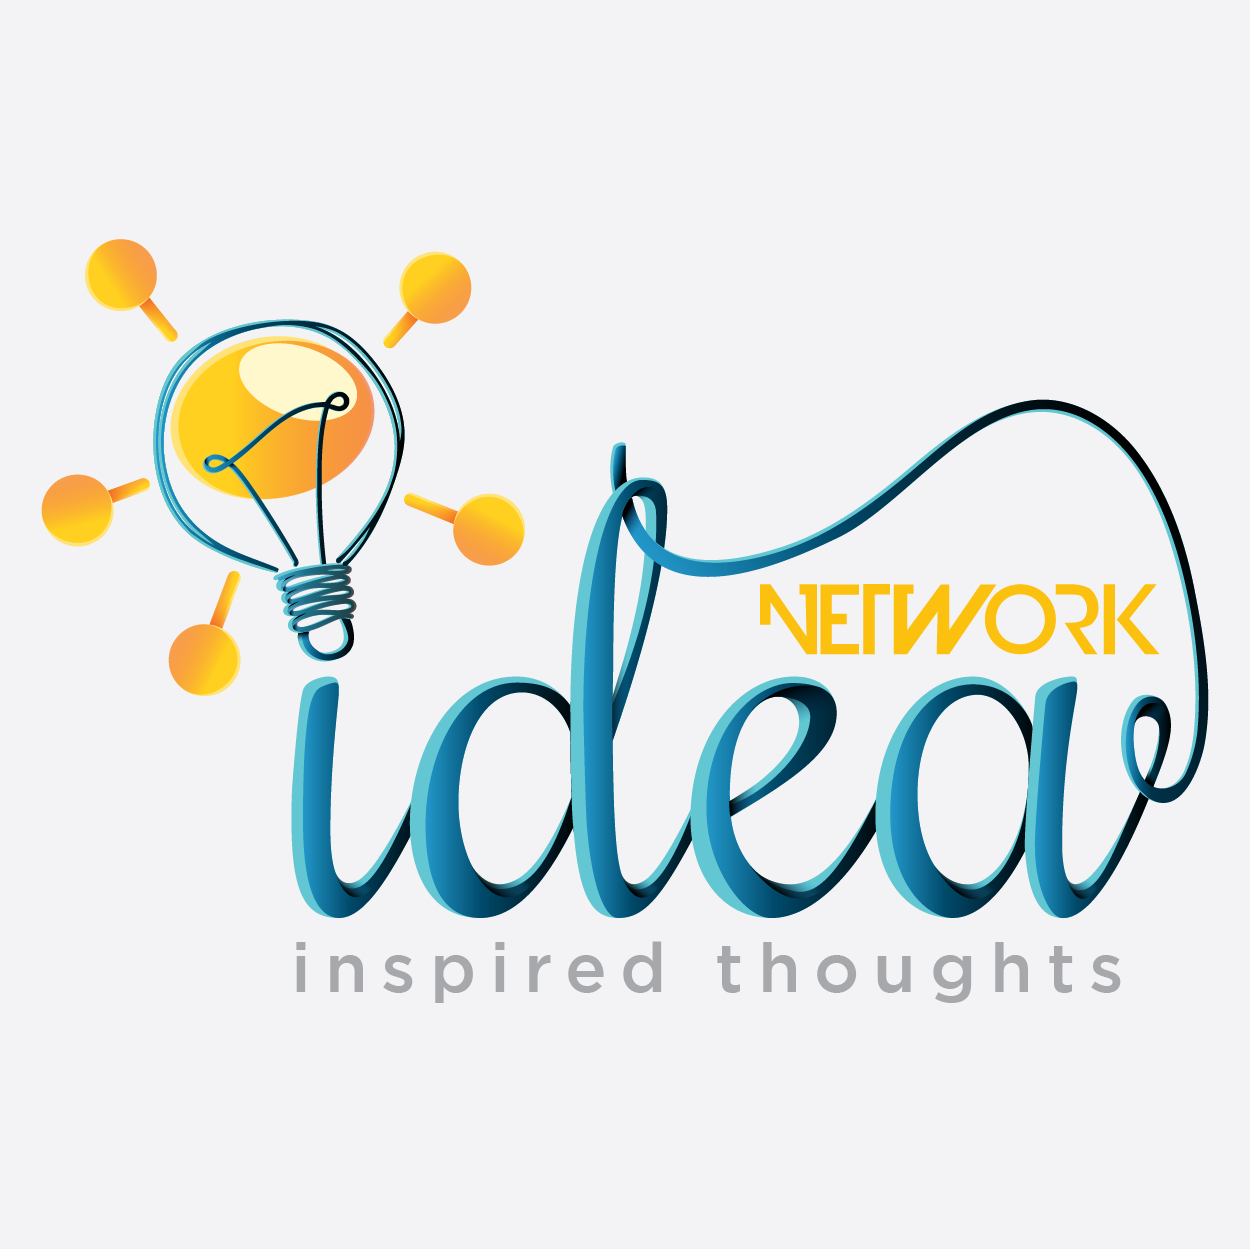 idea network's logo